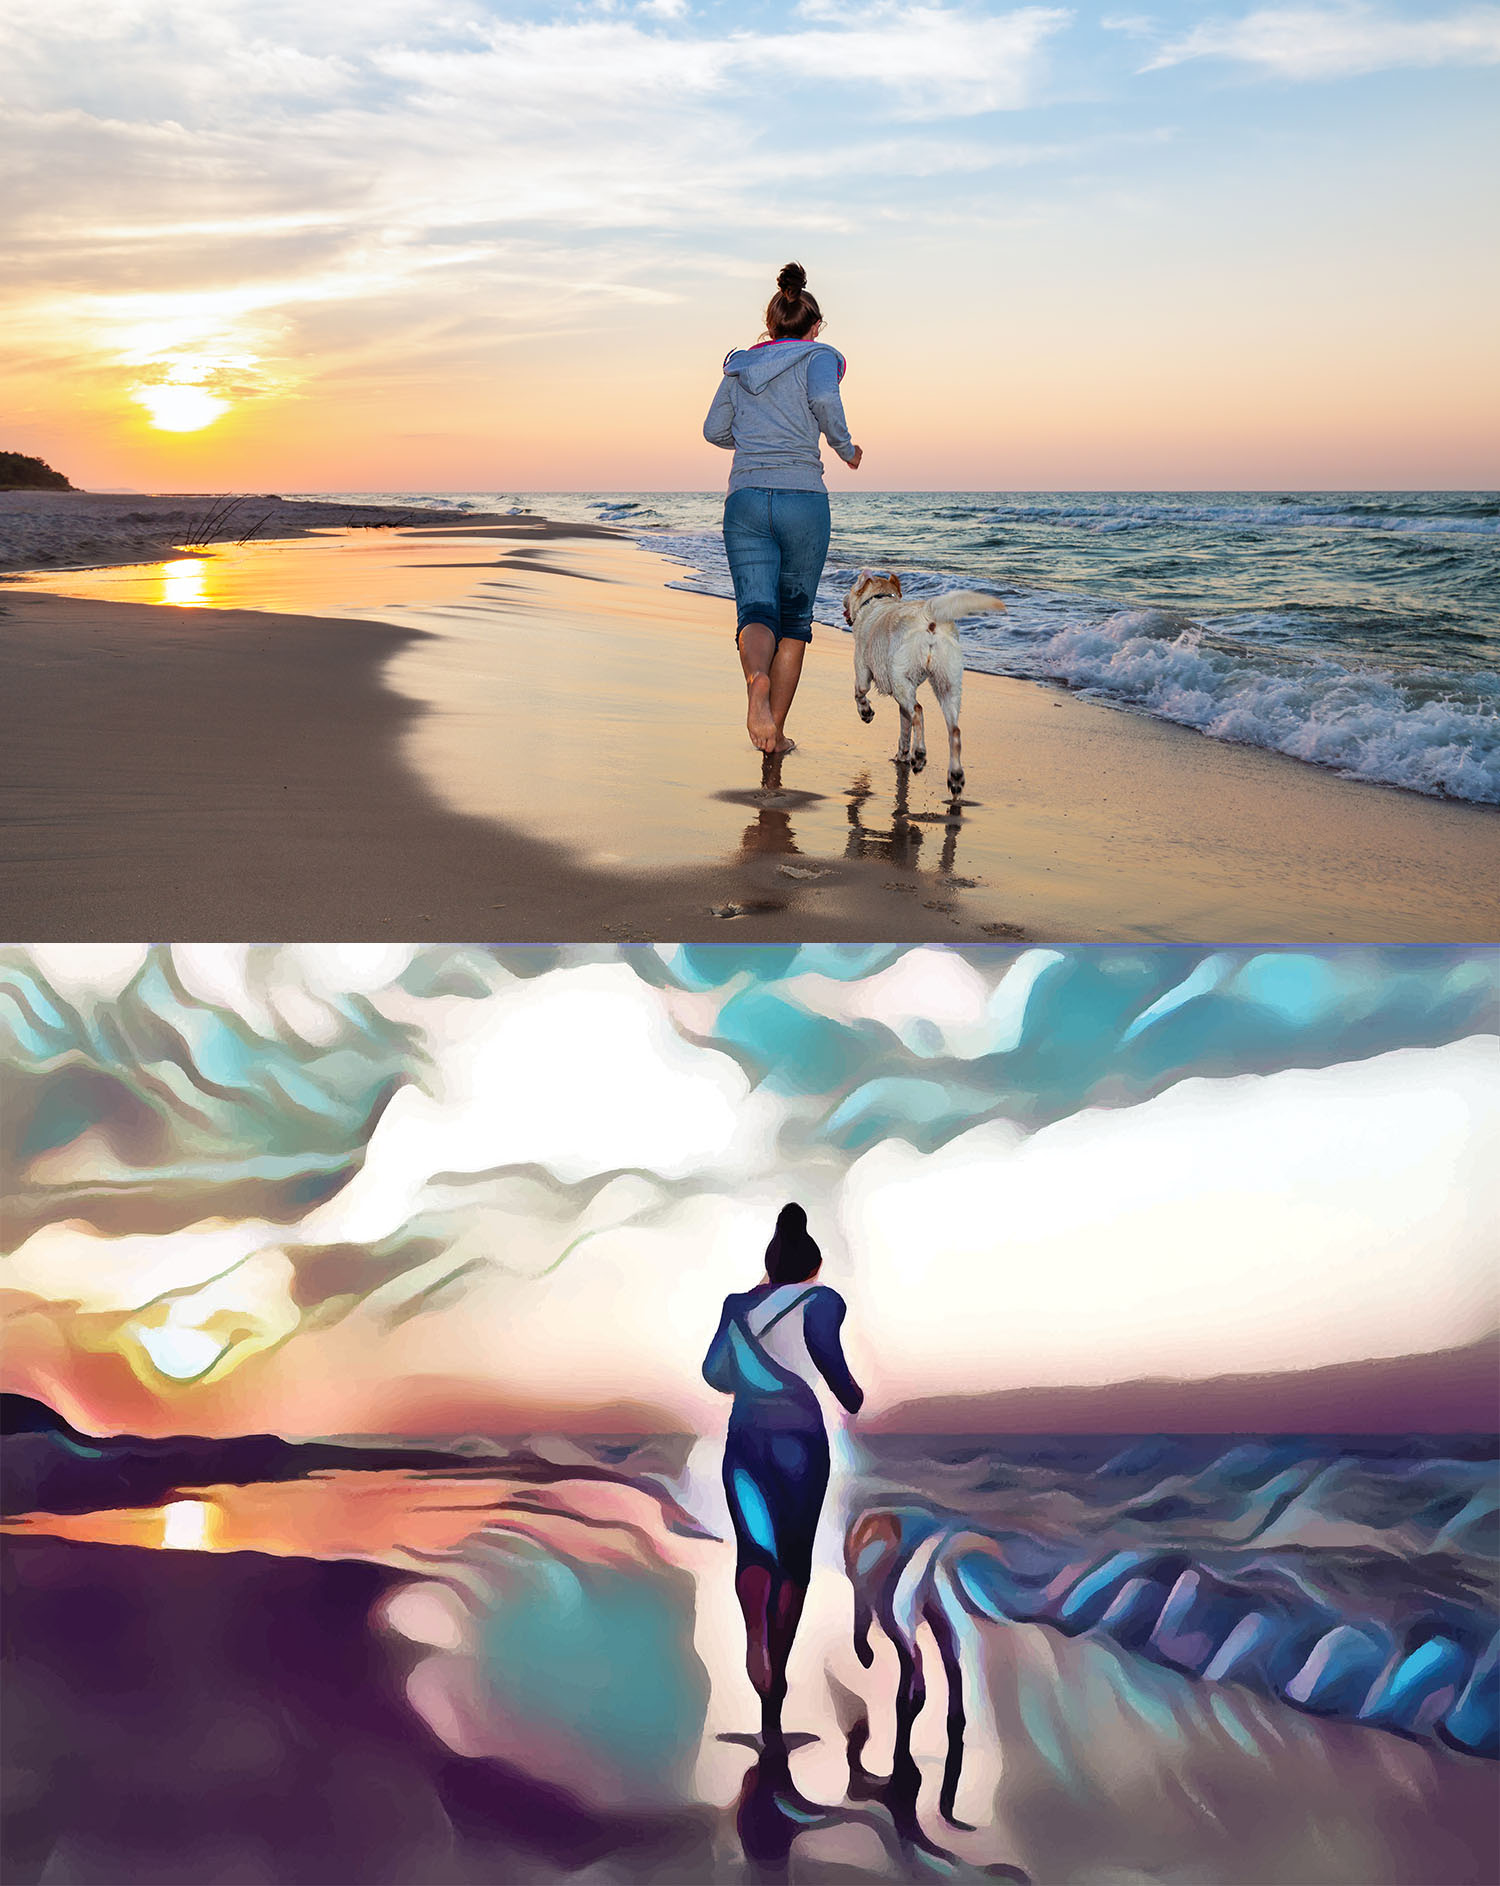 Before and after stylized image of a woman running with her dog on the beach